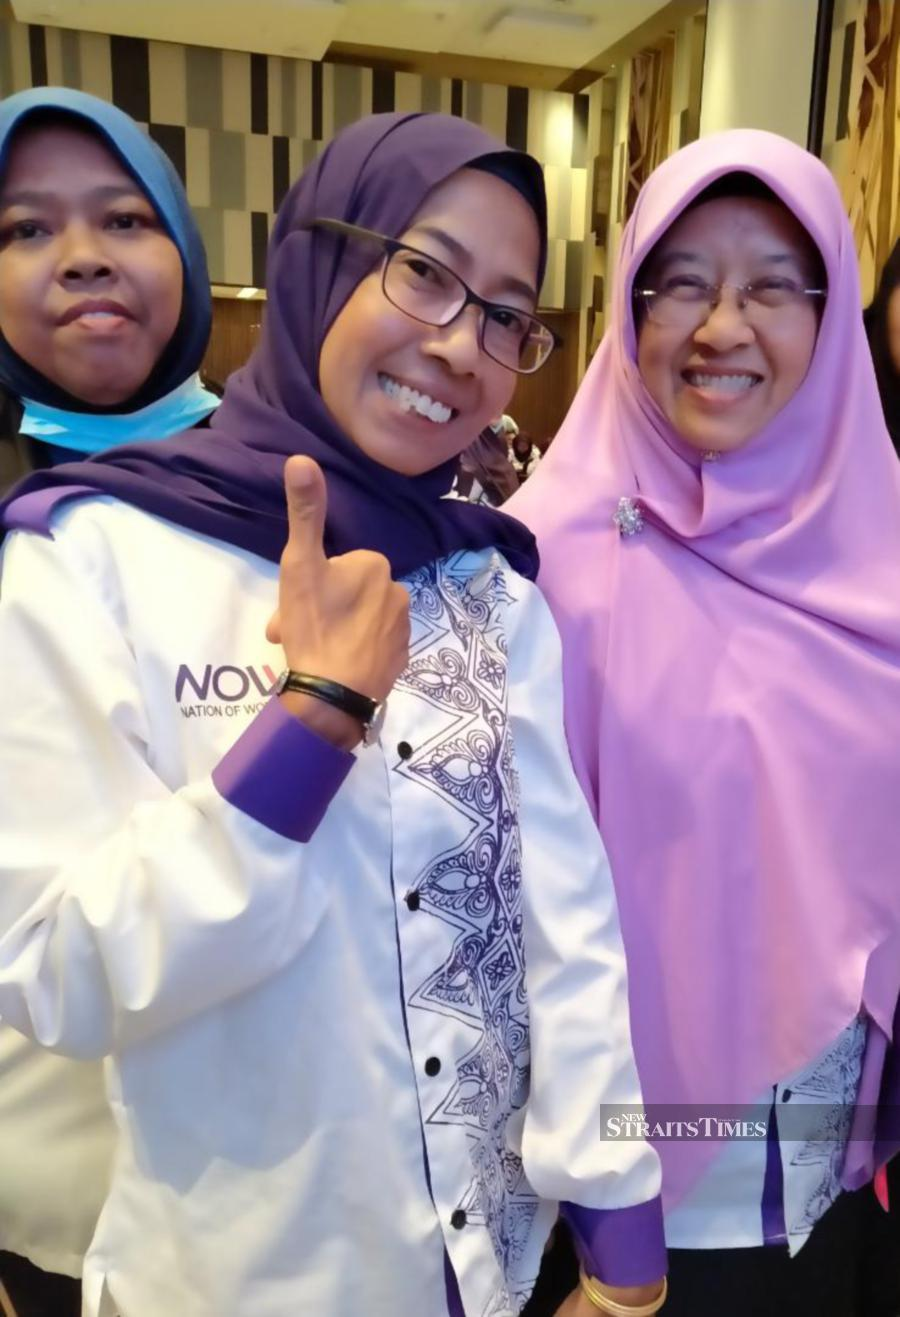 Haniza (right) and Suhaila all smiles after the launch in Johor